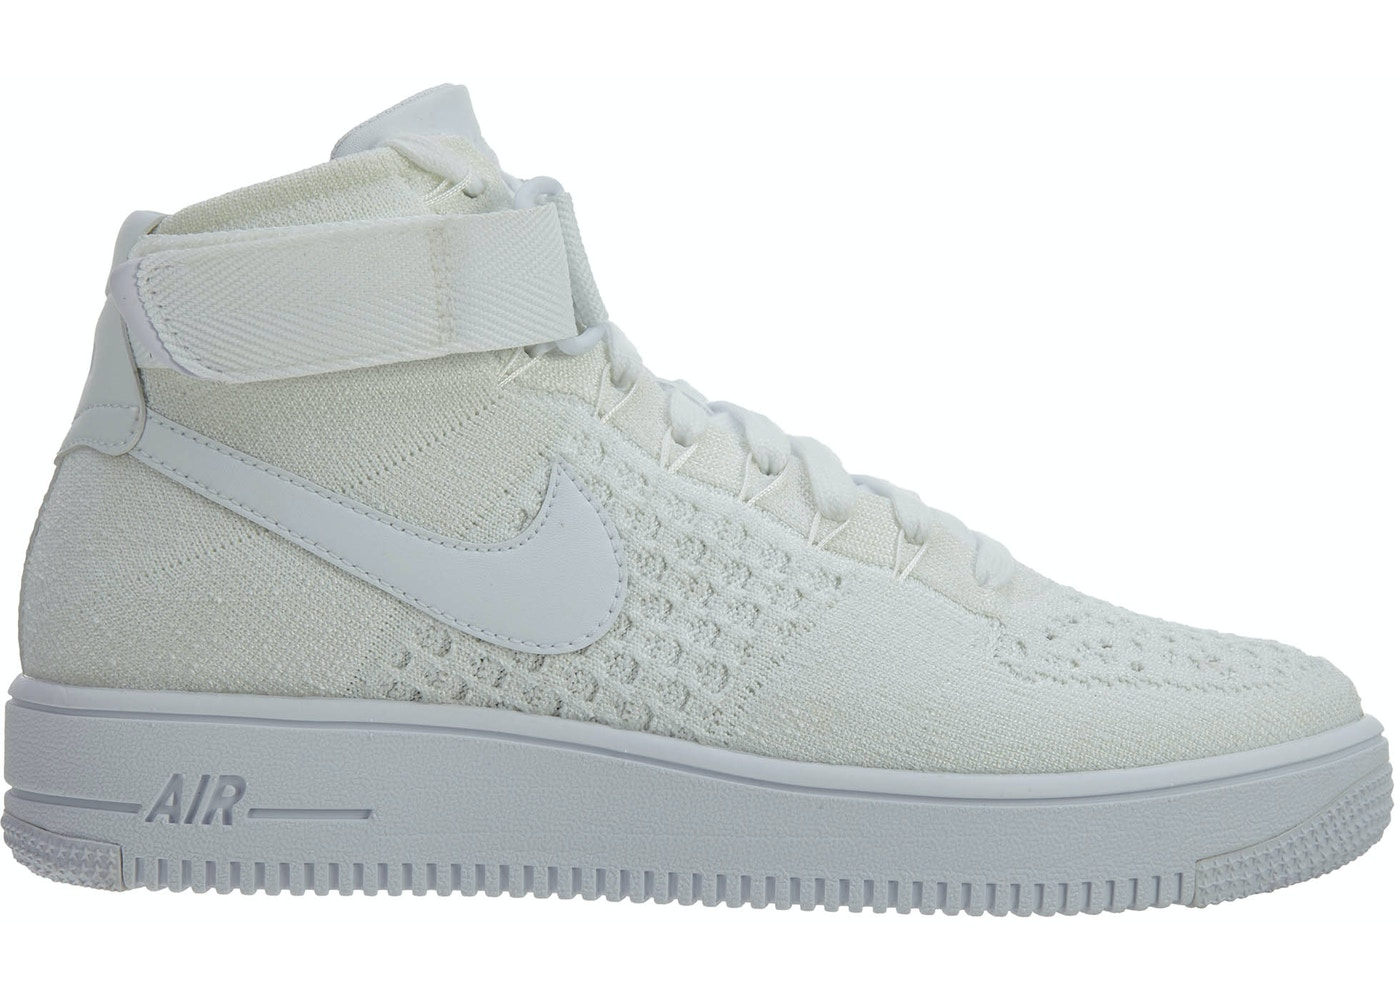 super popular 58515 1a358 Nike Af1 Ultra Flyknit Mid White/White